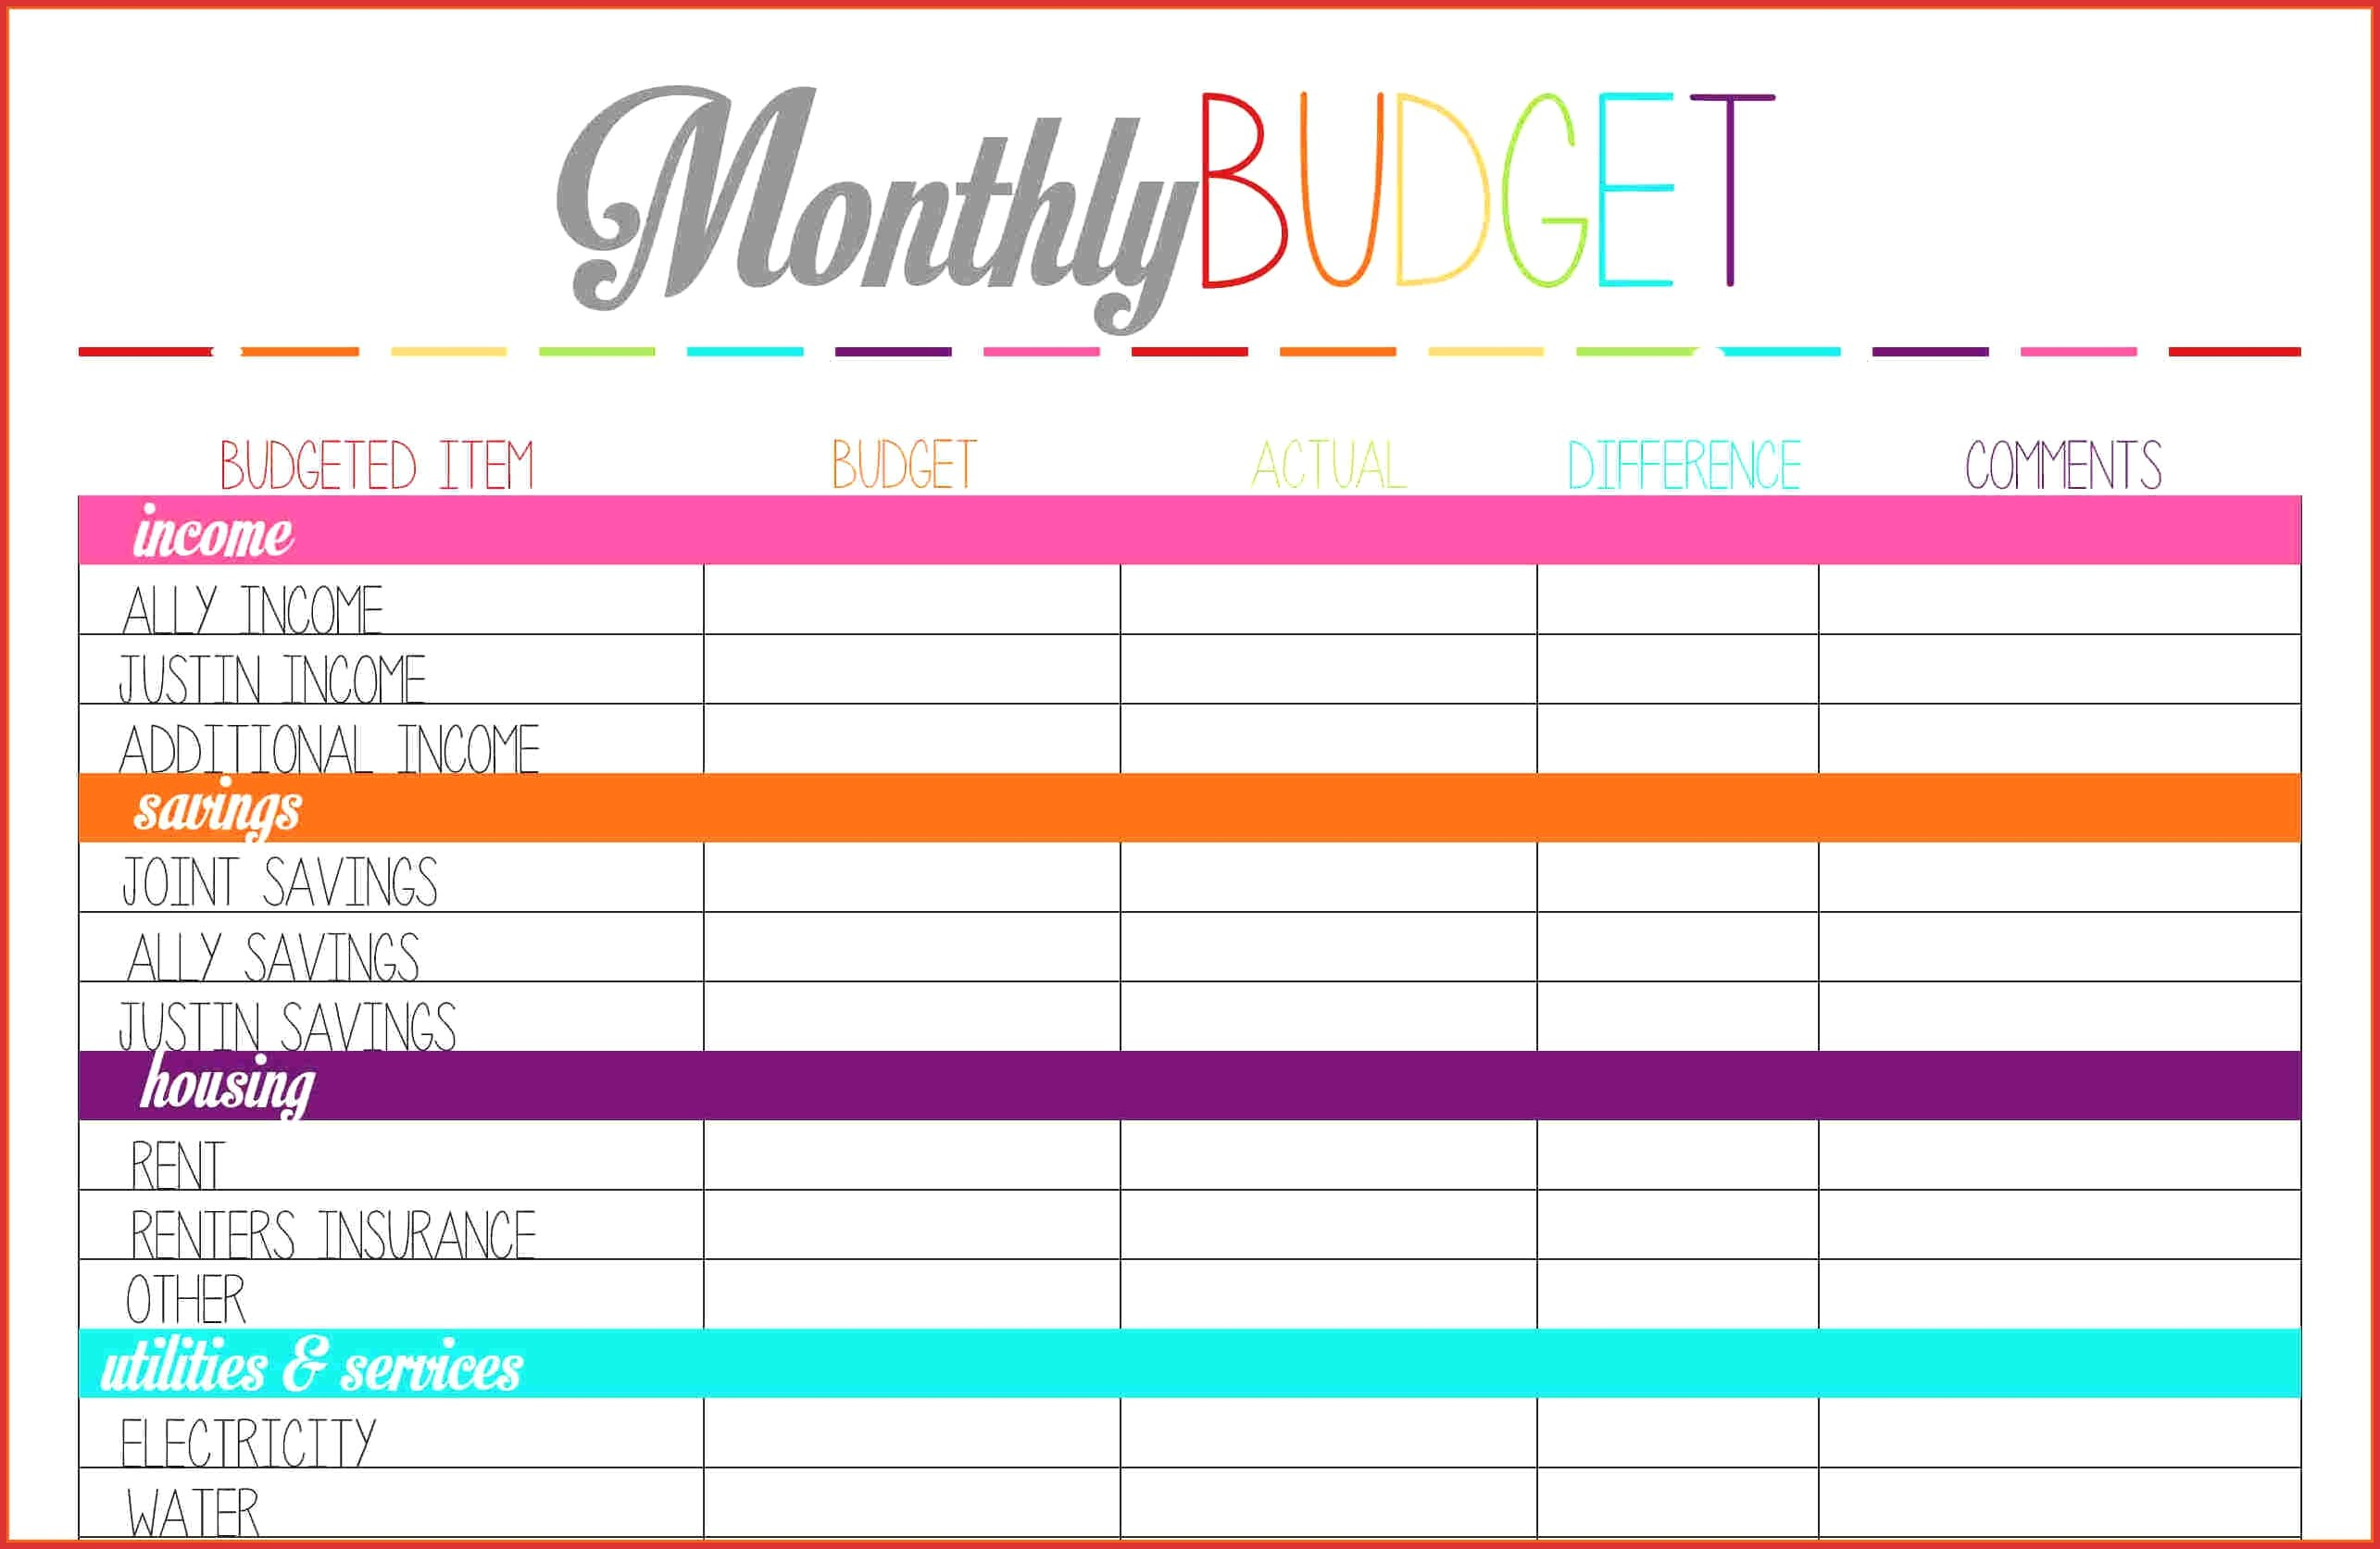 Best Of Budgeting Worksheets | Dos Joinery - Free Printable Budget Worksheets